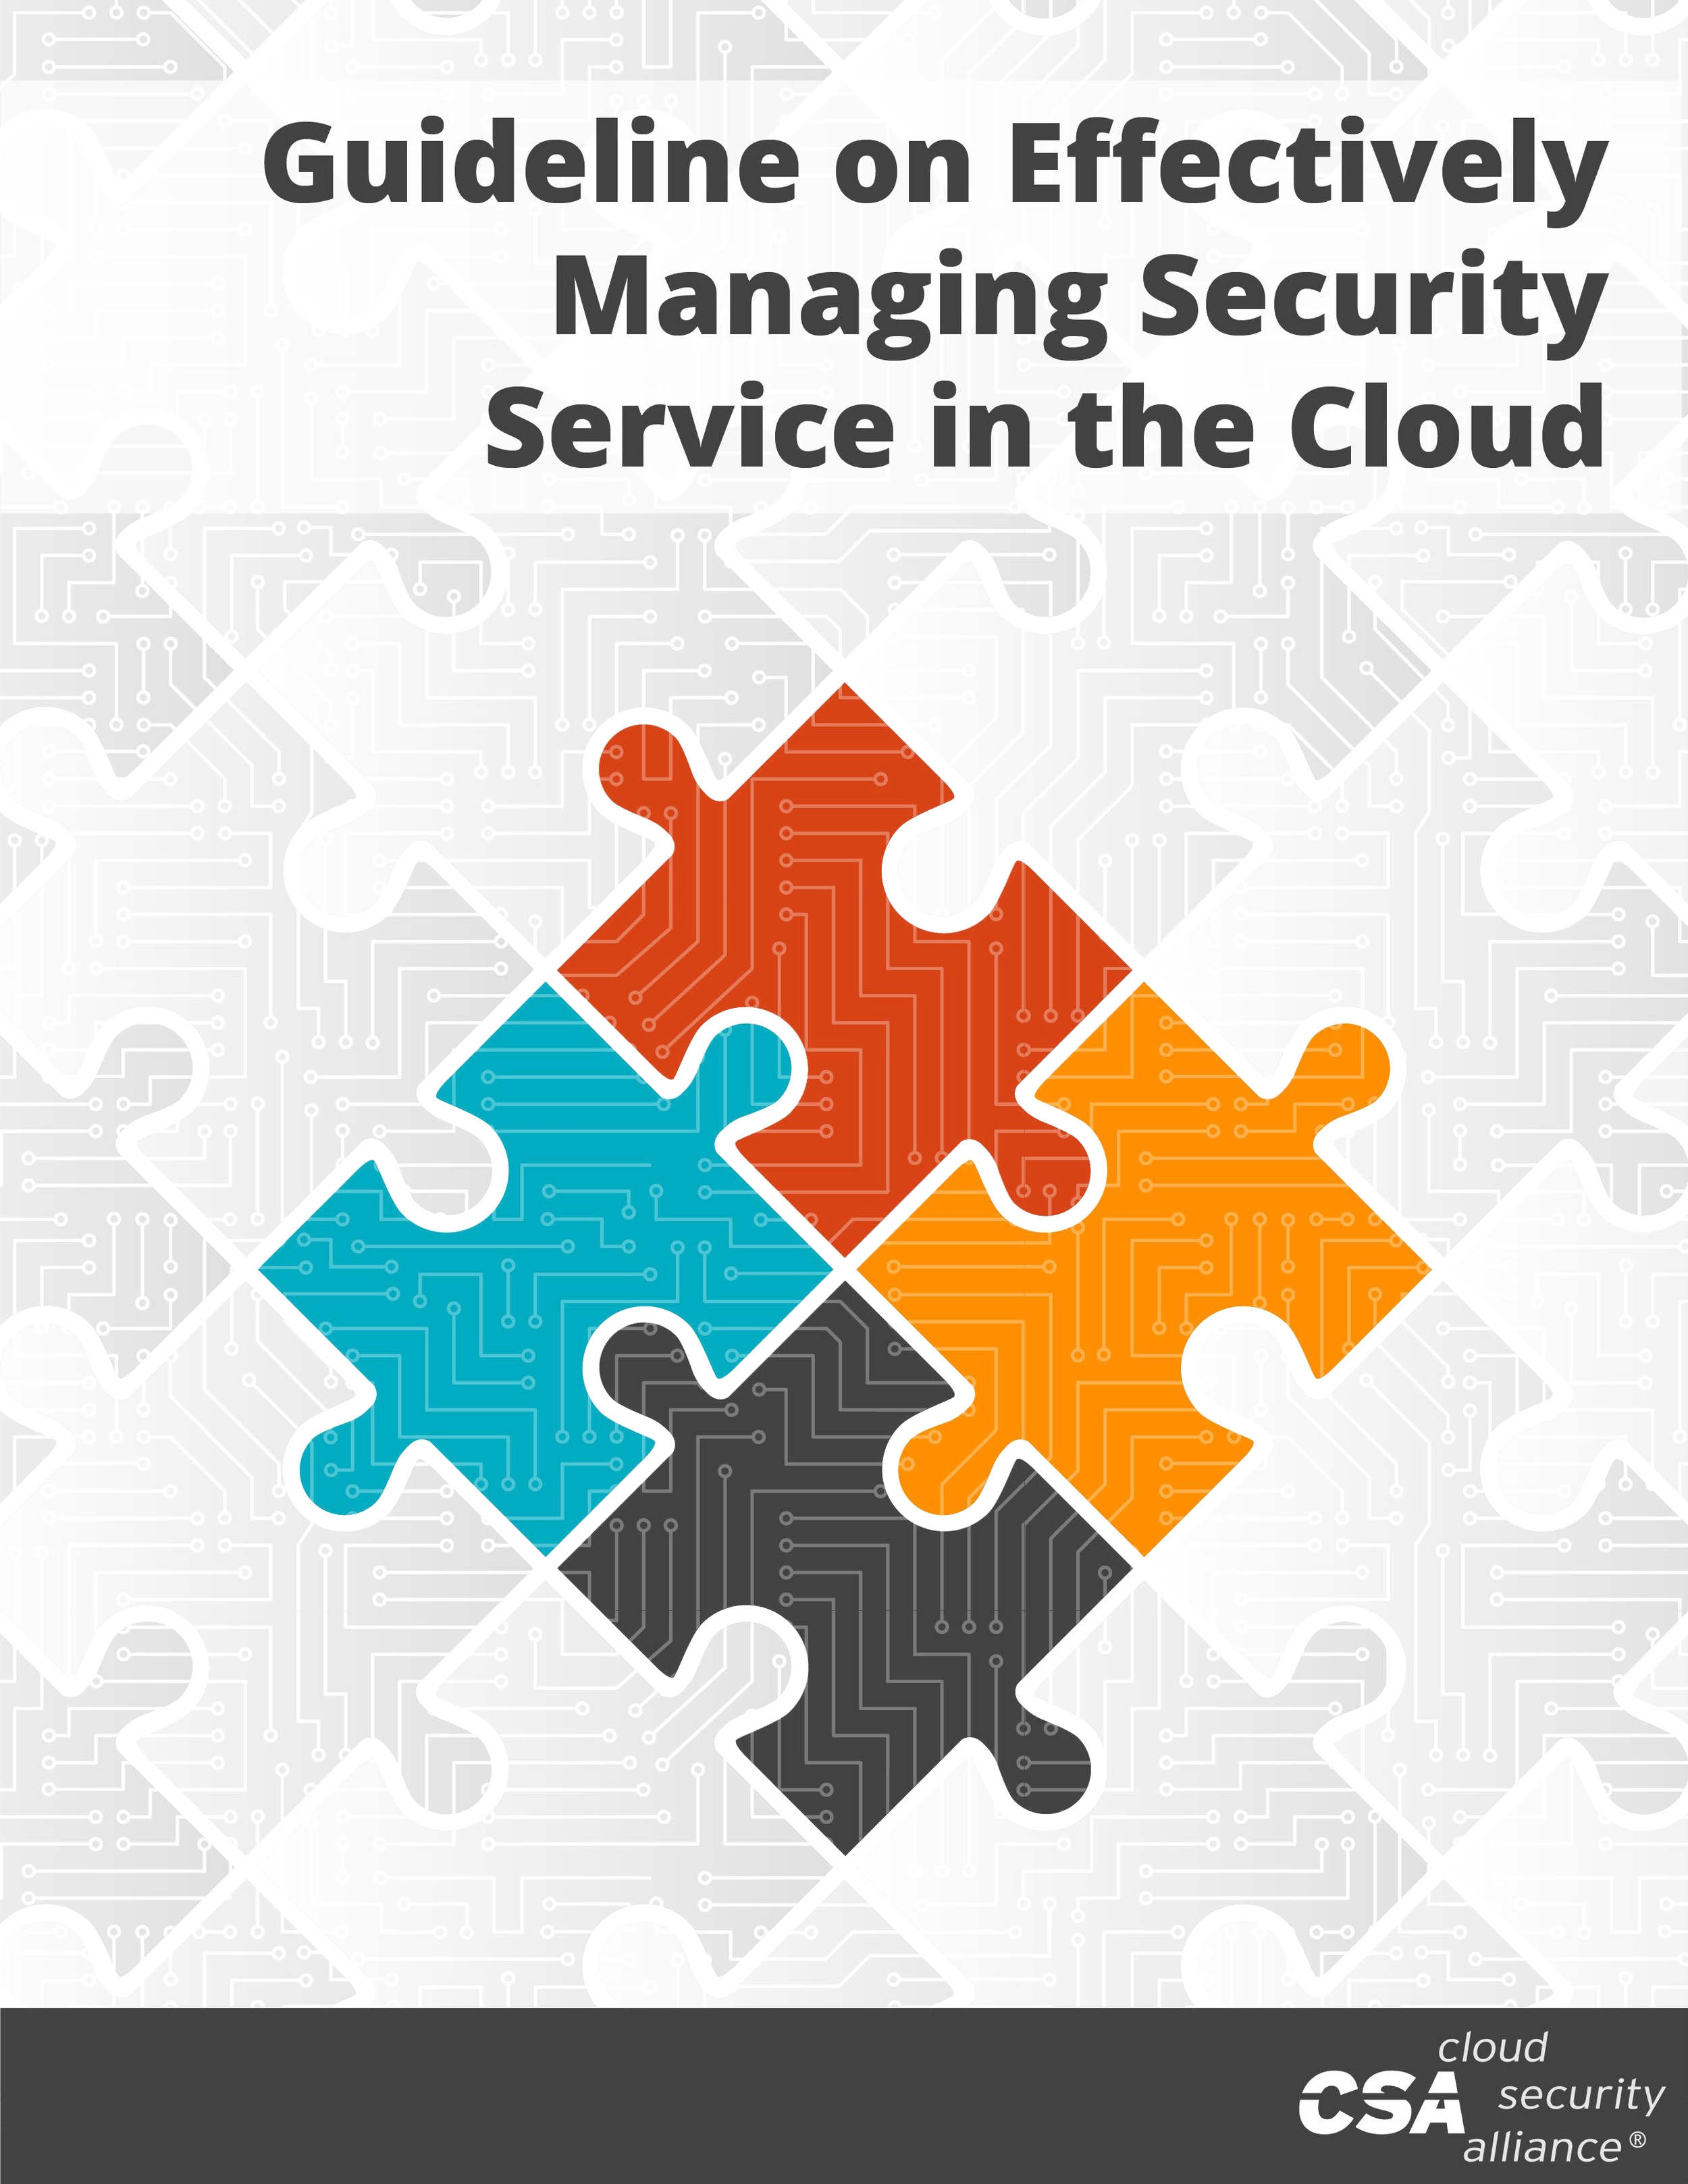 Guideline on Effectively Managing Security Service in the Cloud 10.2.18-1.png